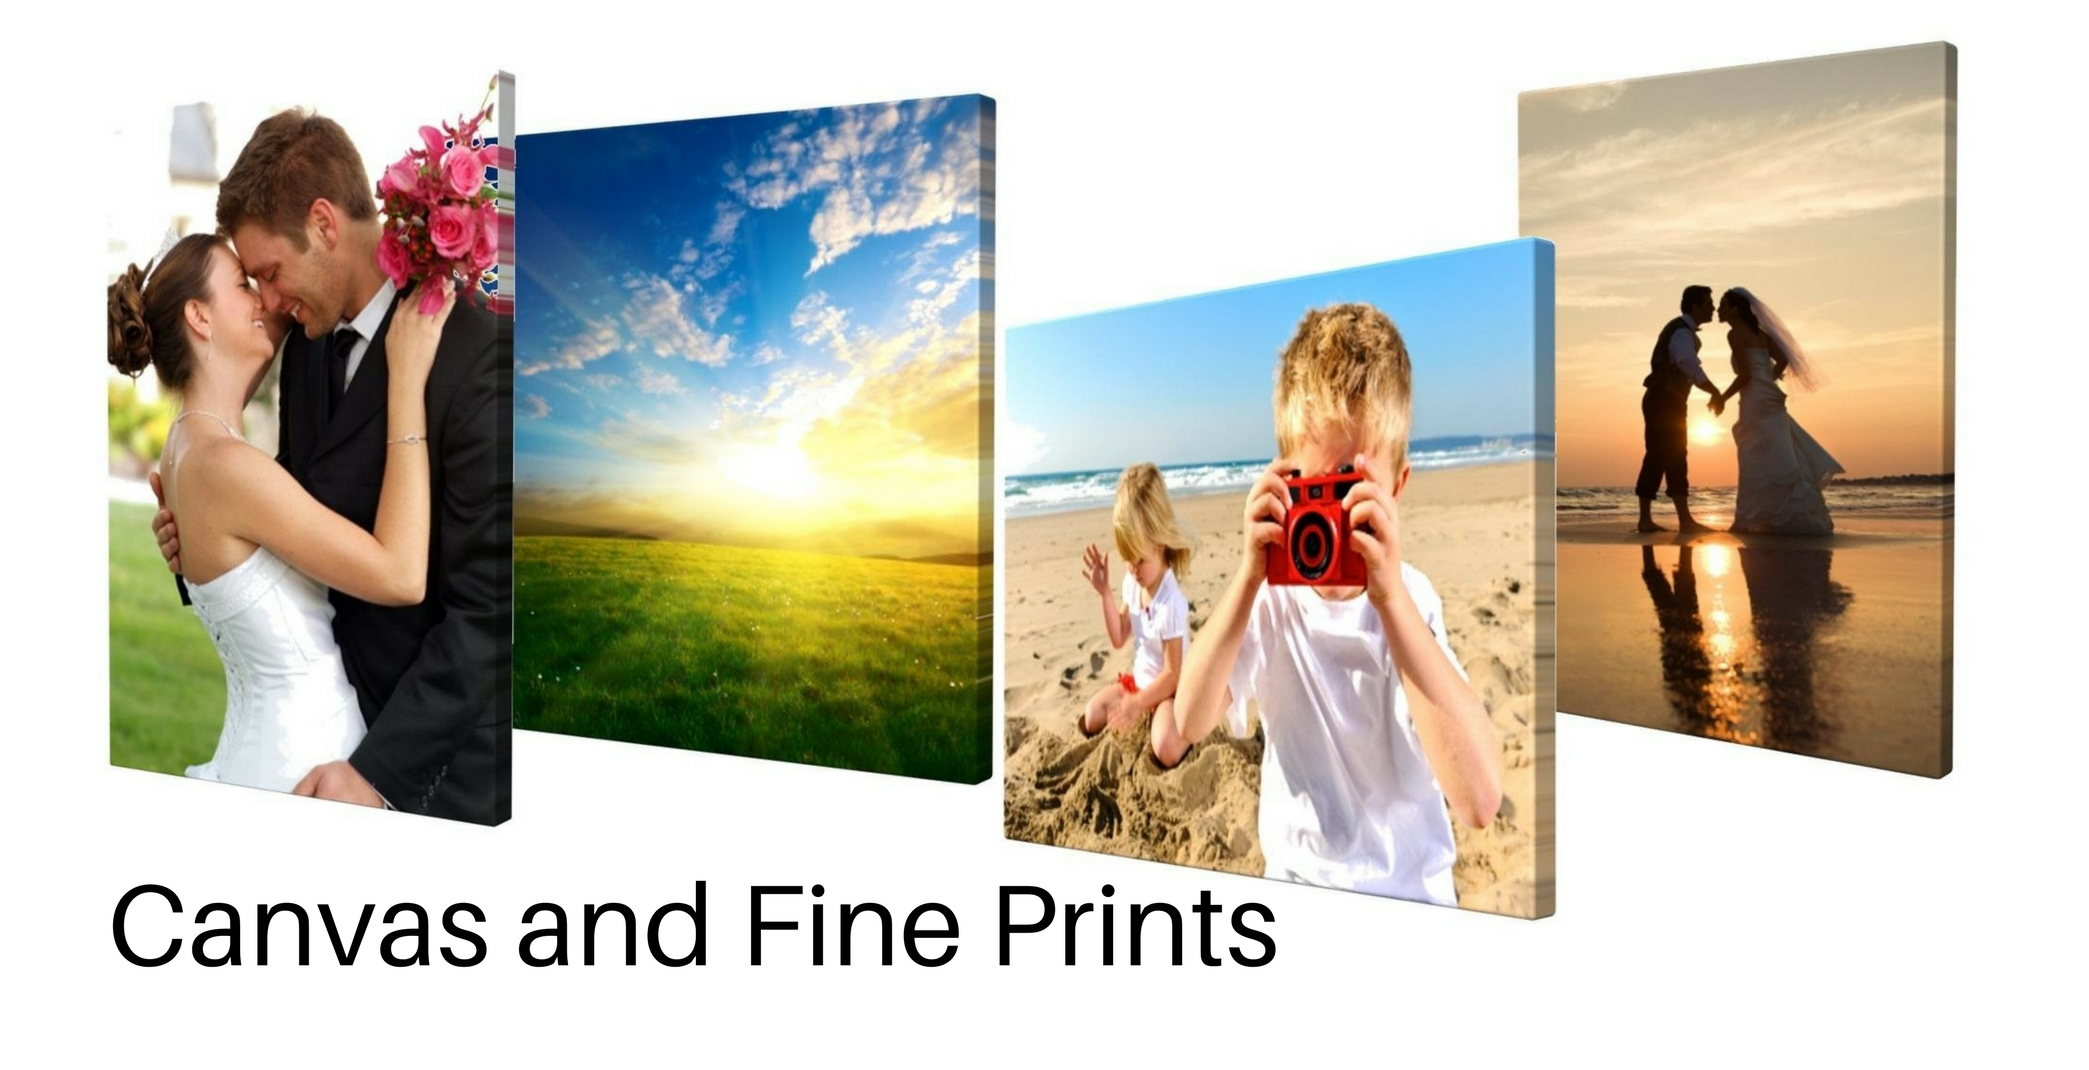 Canvas and Fine Prints - Let your Life's Experiences Grace Your Walls